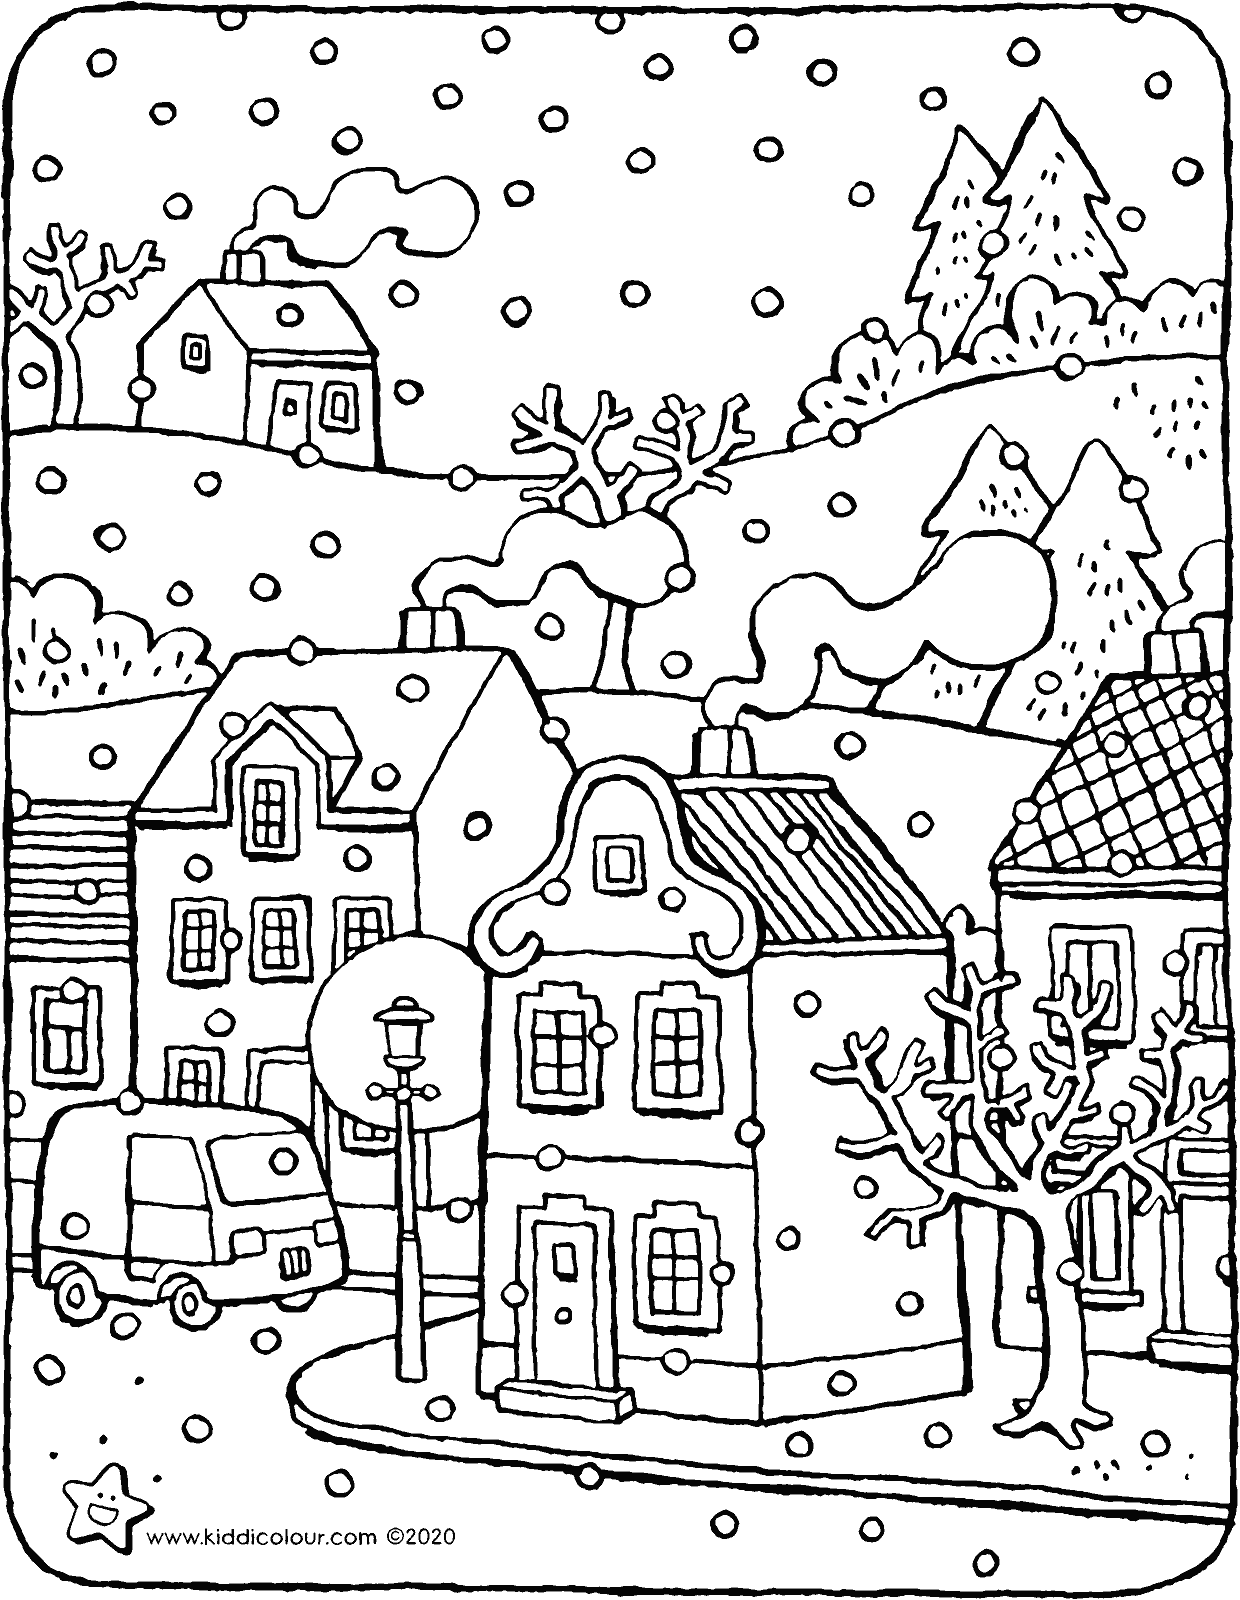 the first snow colouring page drawing picture 01V